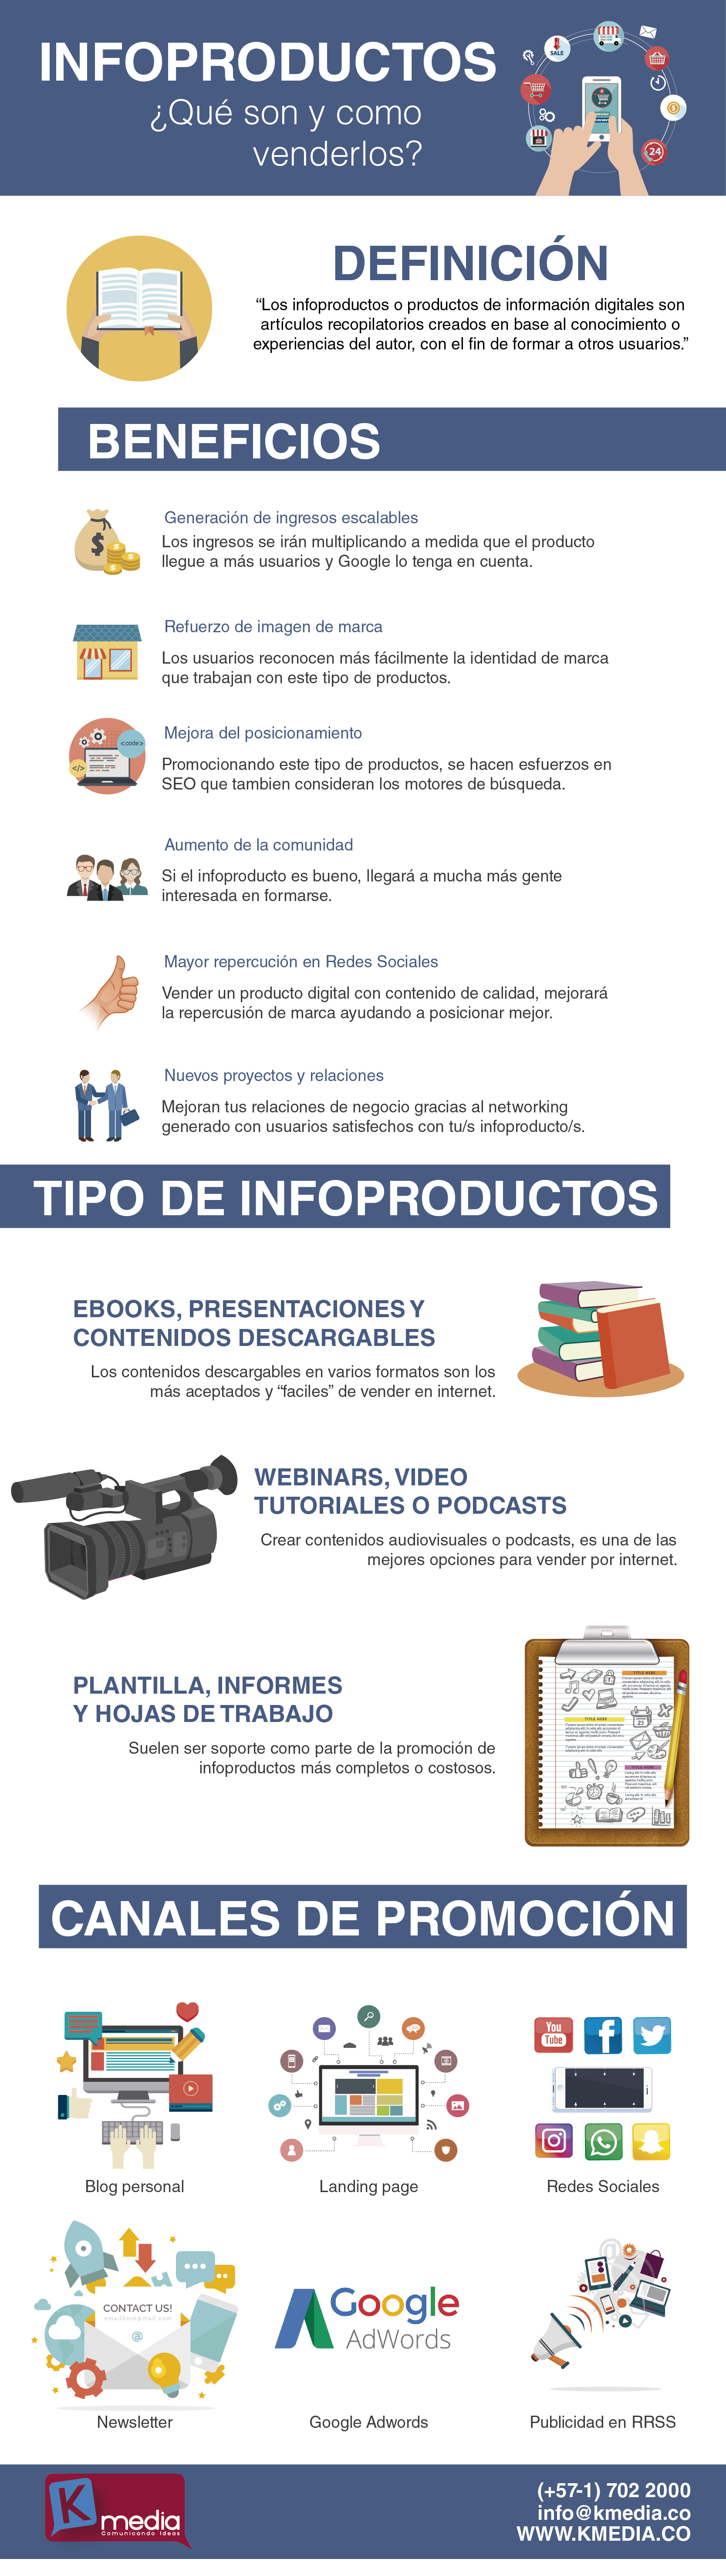 infoproductos-01